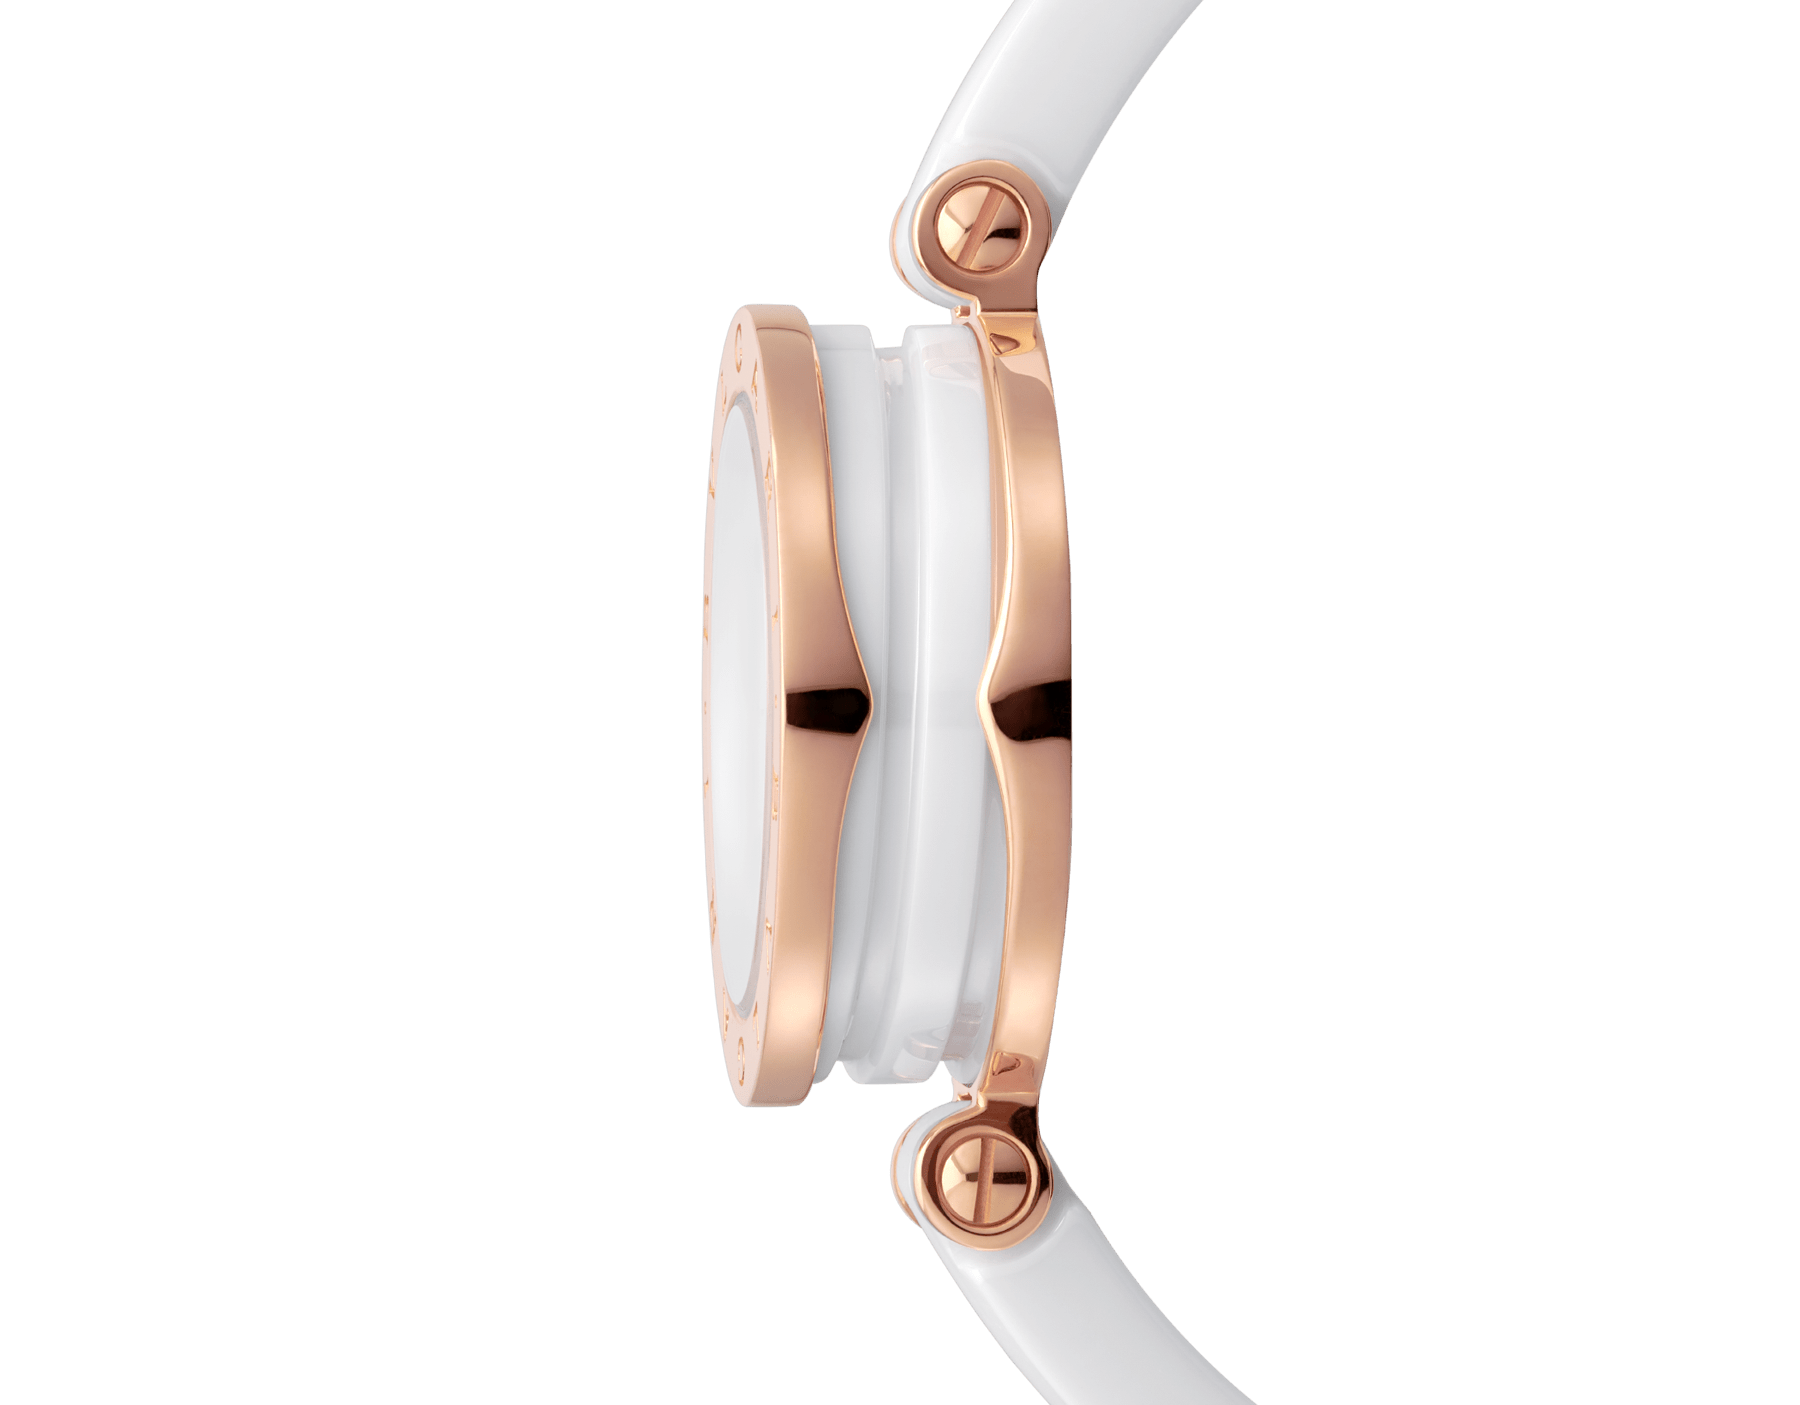 B.zero1 watch with 18 kt rose gold and white ceramic case, white lacquered dial set diamond indexes, white ceramic bangle and 18 kt rose gold clasp. B01watch-white-white-dial3 image 3